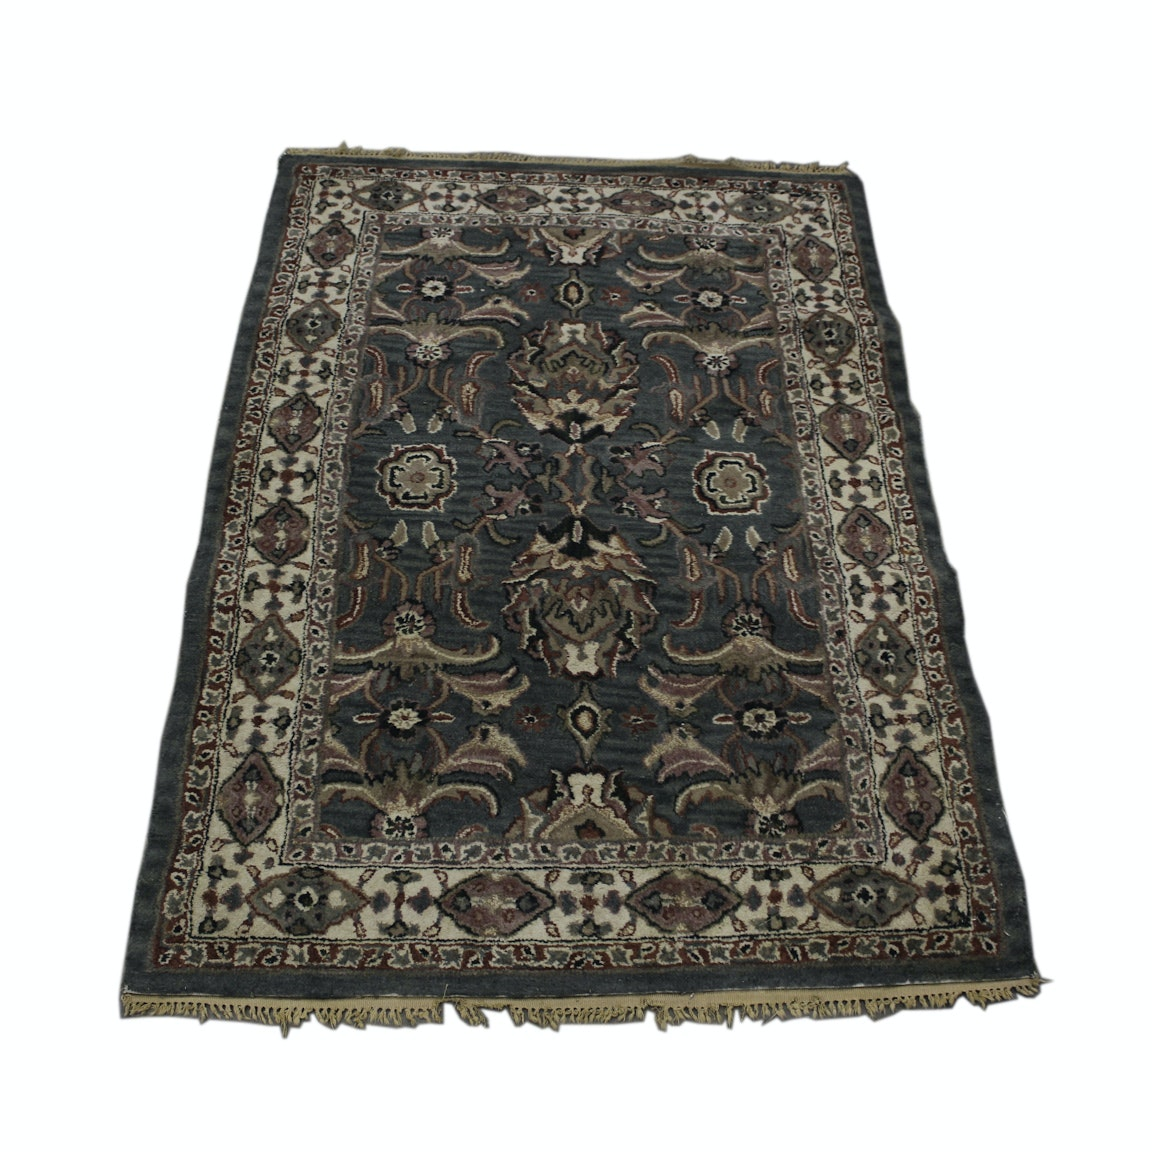 Hand-Tufted Indian Area Rug